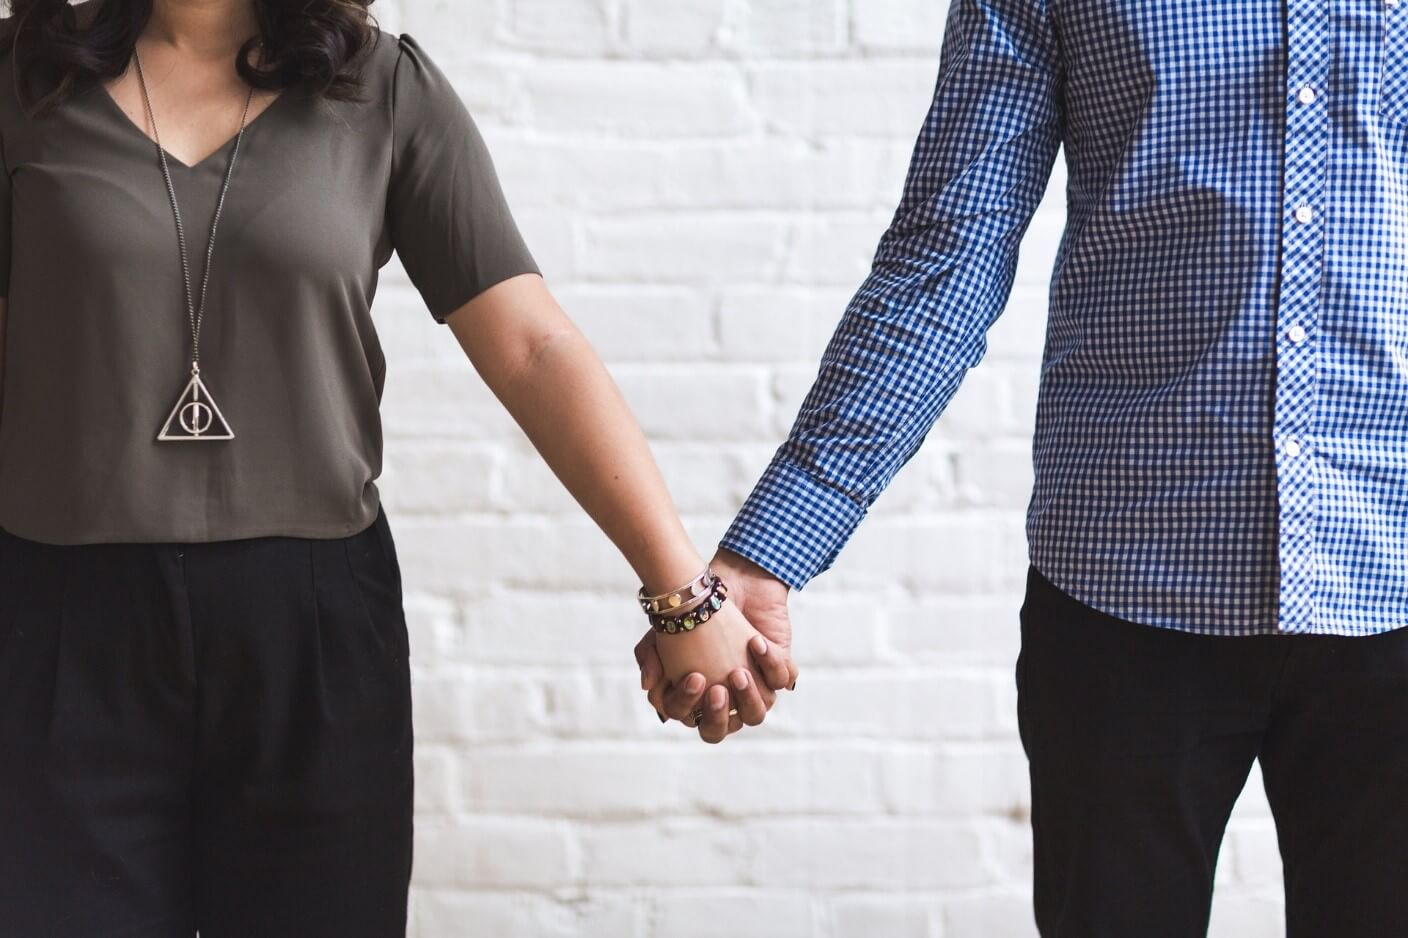 Premise Indicator Words: How To Deal With Arguments In Relationships